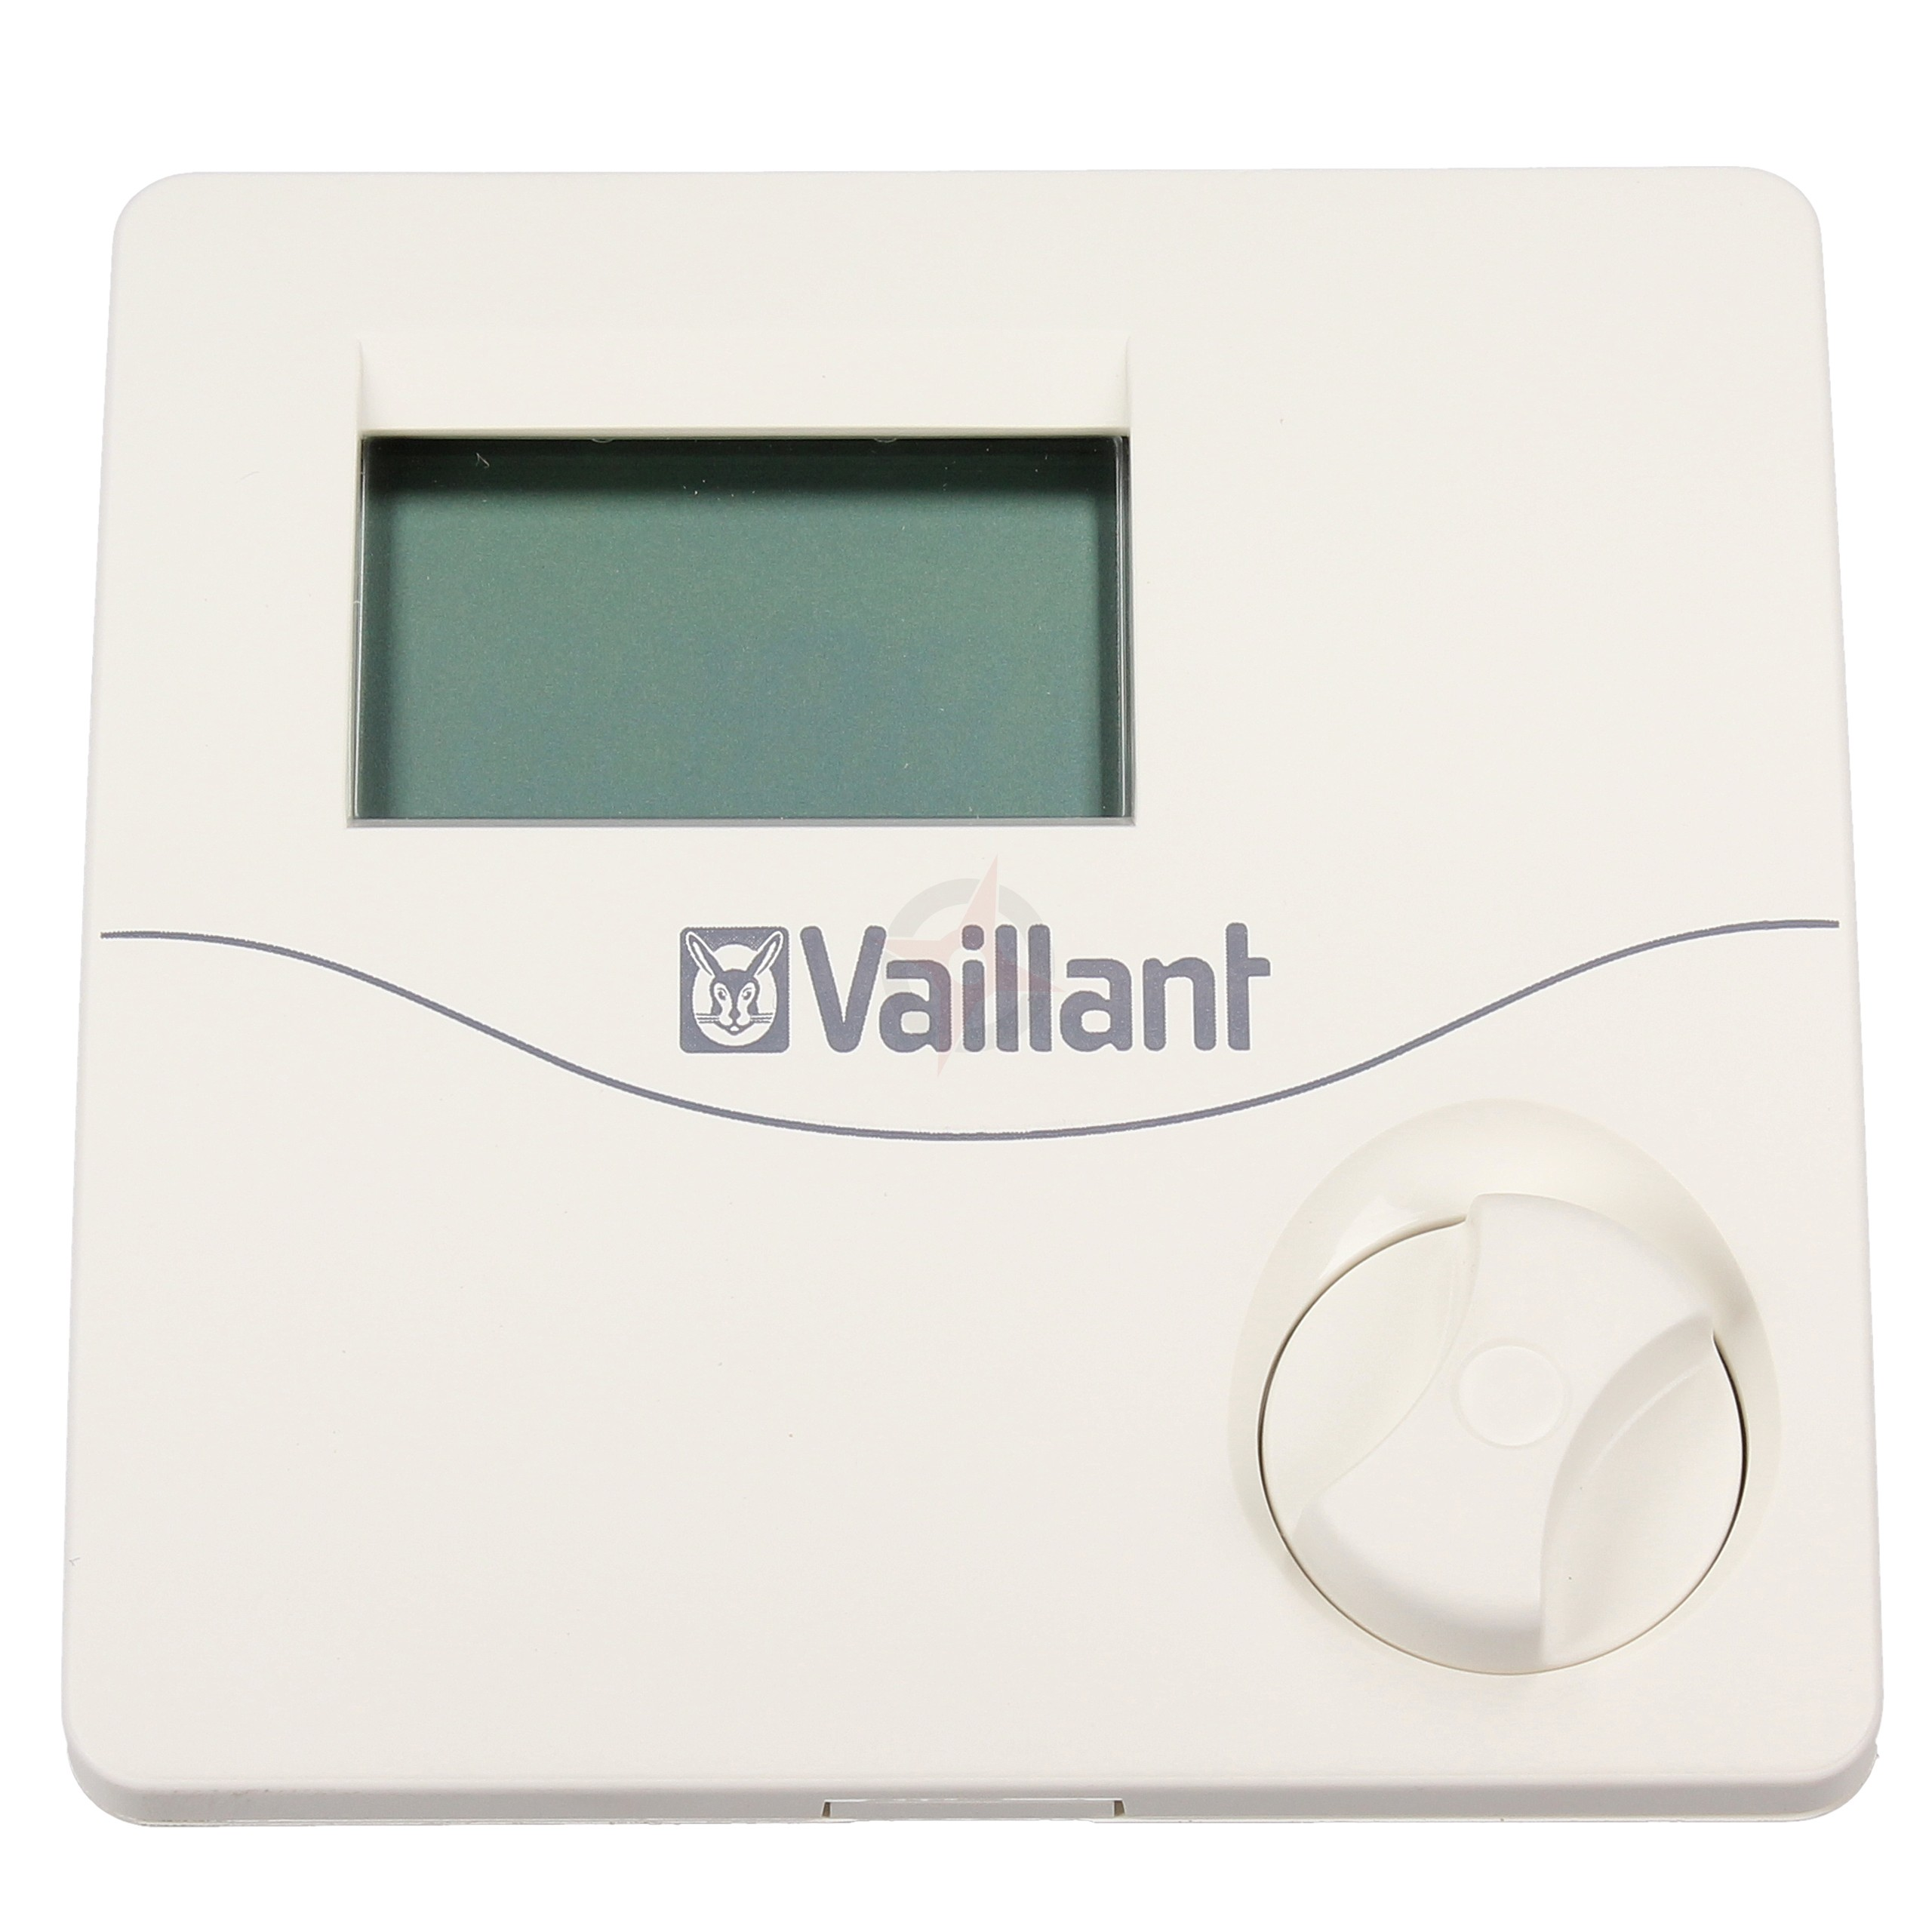 vaillant vrt50 digital room thermostat compass plumbing heating. Black Bedroom Furniture Sets. Home Design Ideas